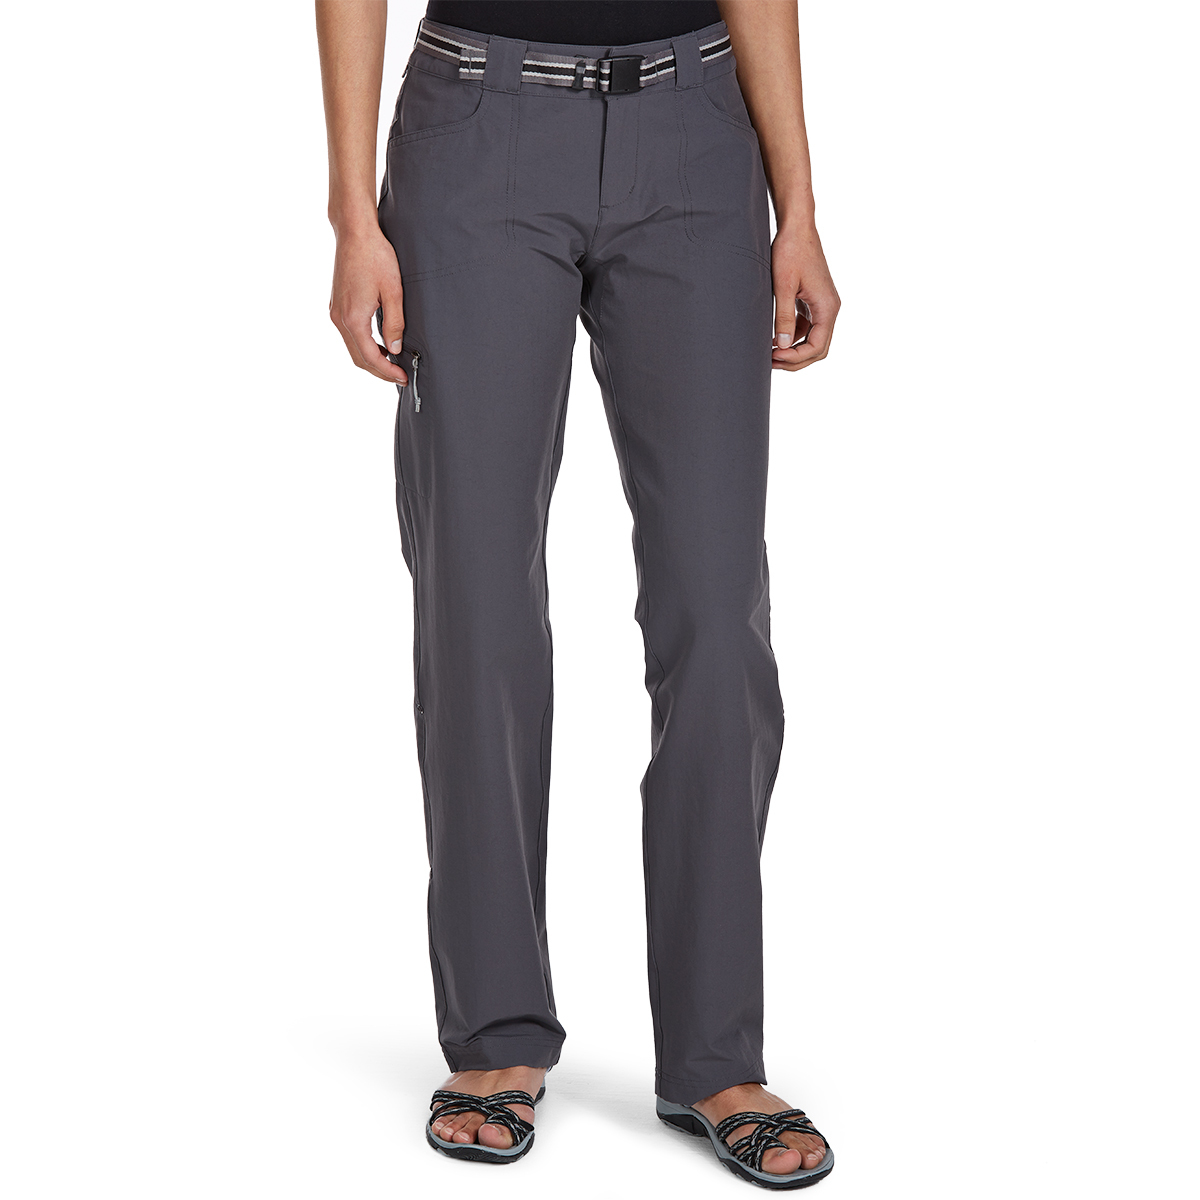 Ems Women's Compass Trek Pants - Black, 6/R